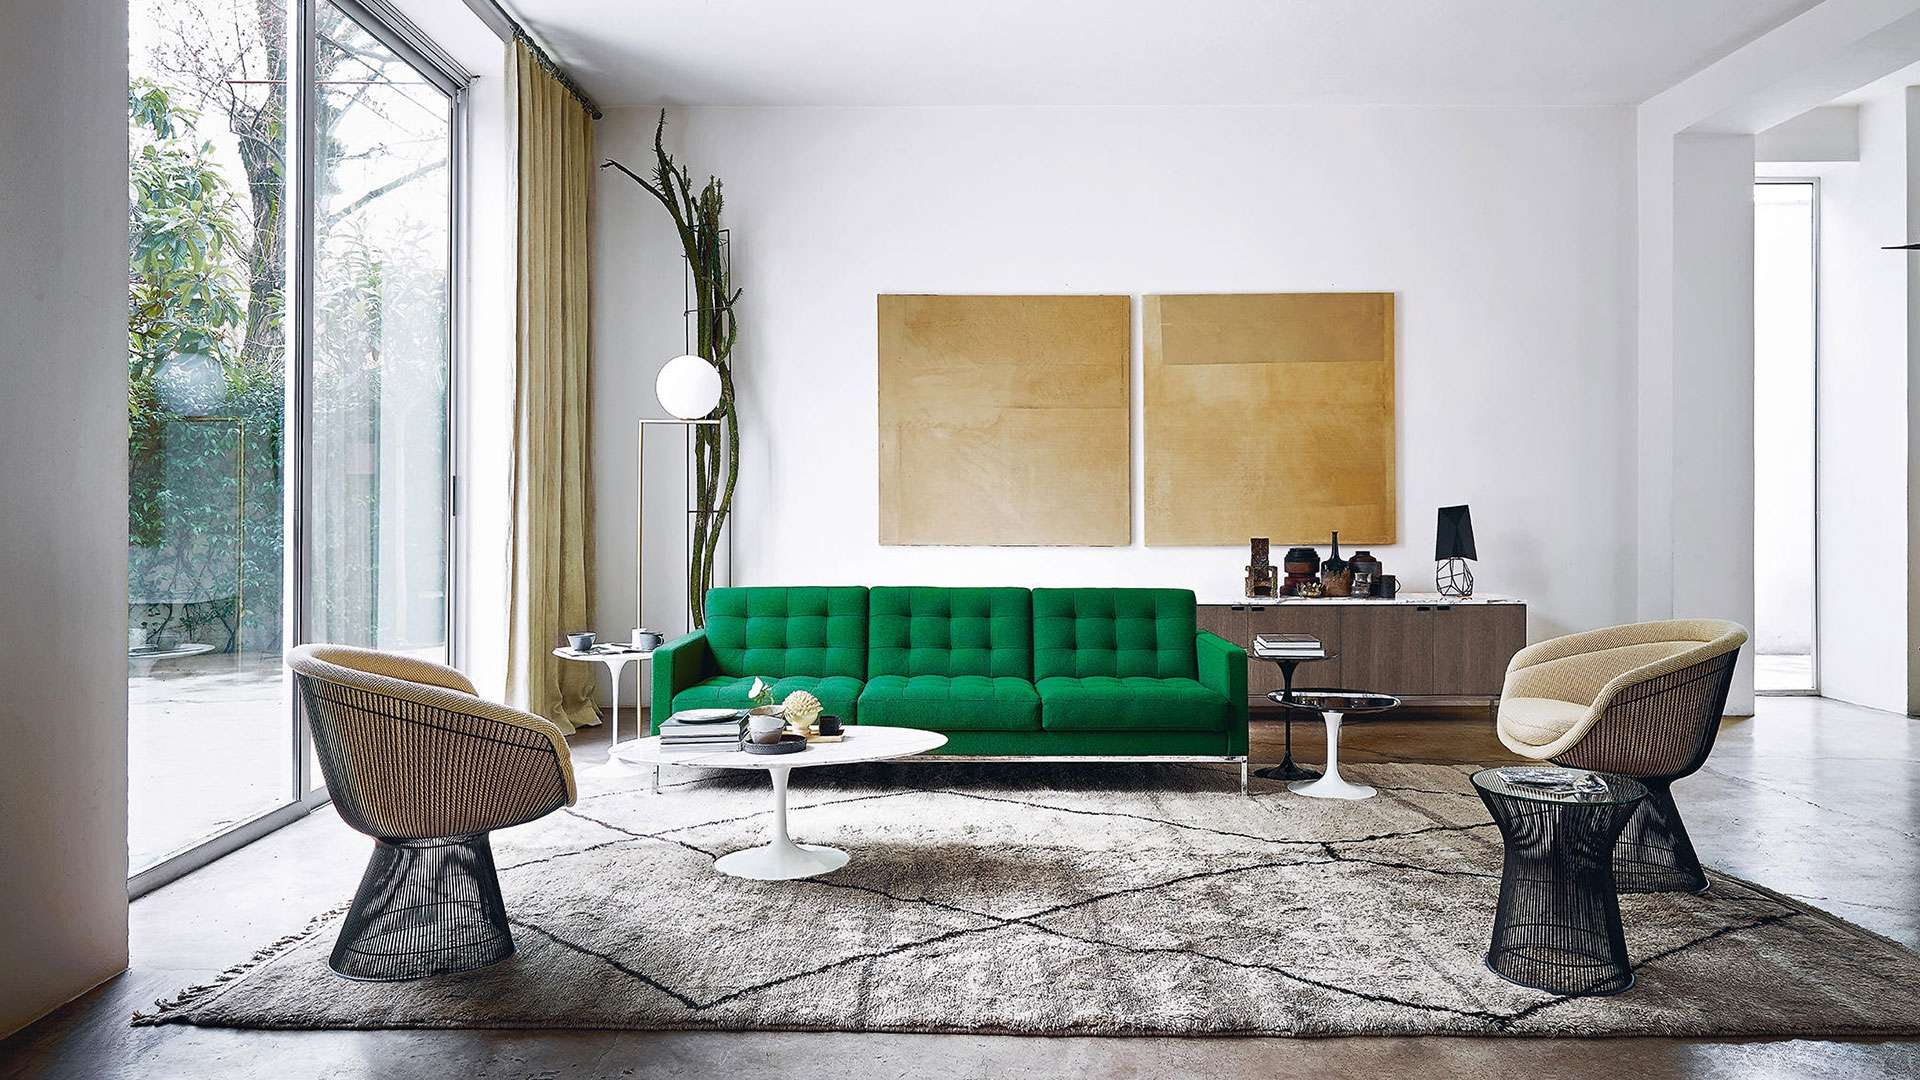 Where to go to Upgrade your Furniture in Barcelona 3 Where to go to Upgrade your Furniture in Barcelona